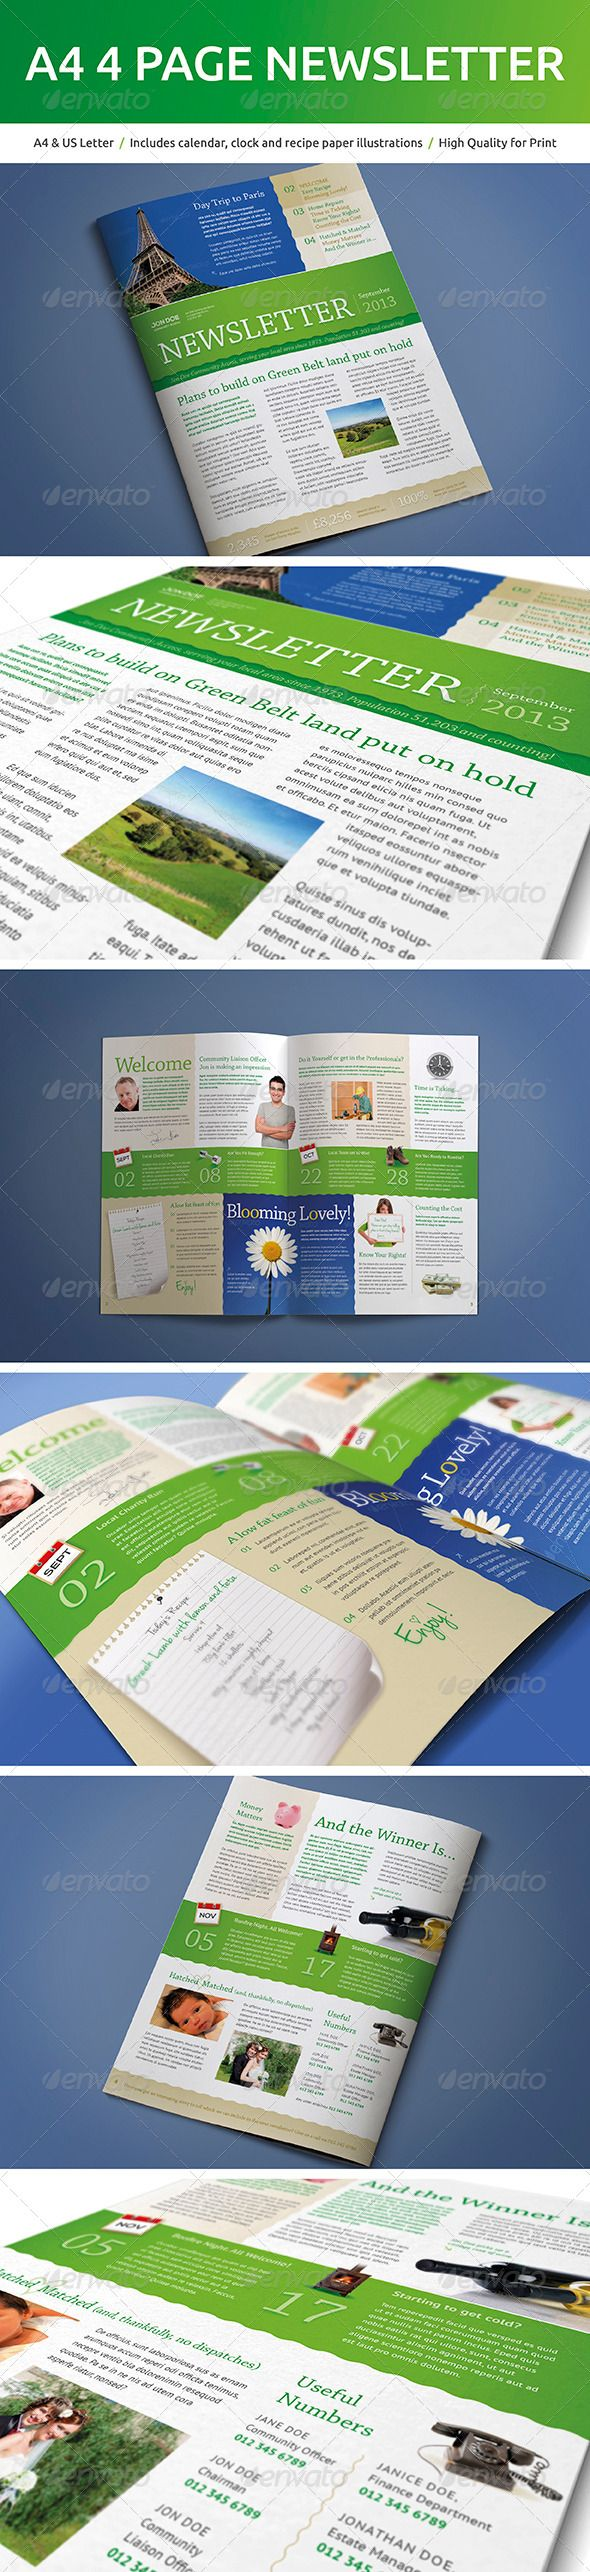 A Page Newsletter Newsletter Templates Font Free And Print - 4 page newsletter template